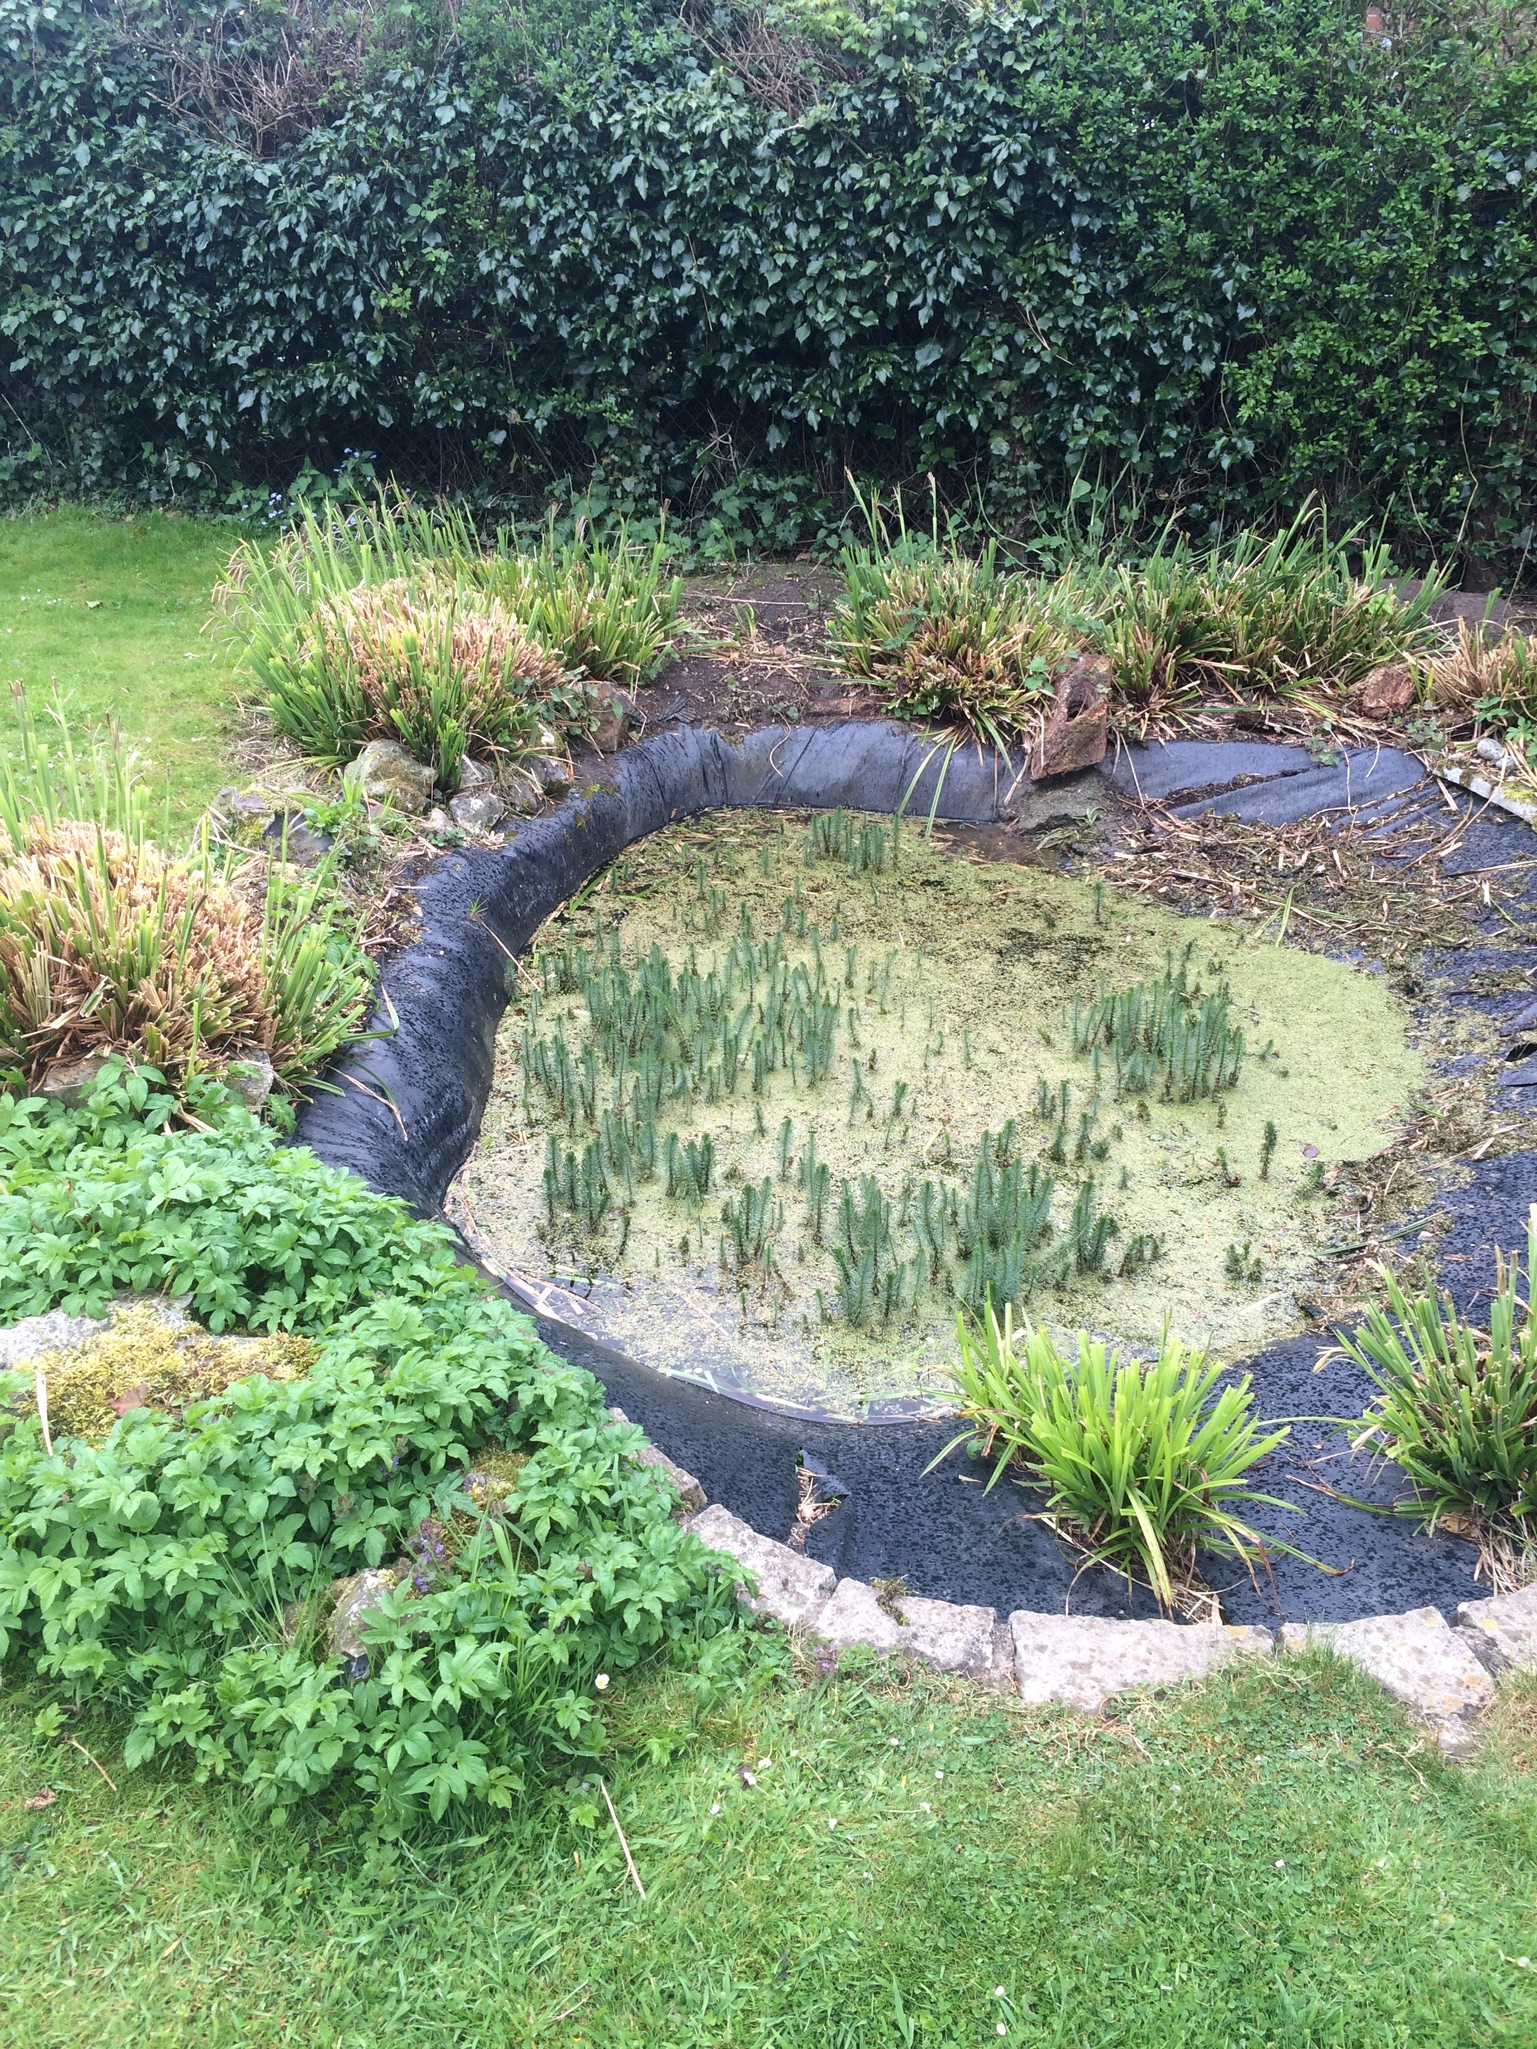 Before picture: for pond re-design, ripped liner, leaking pond, overgrown non native plants and silt build up in pond. New design and planting plan was drawn up leveling pond, re-lining and re-planting.